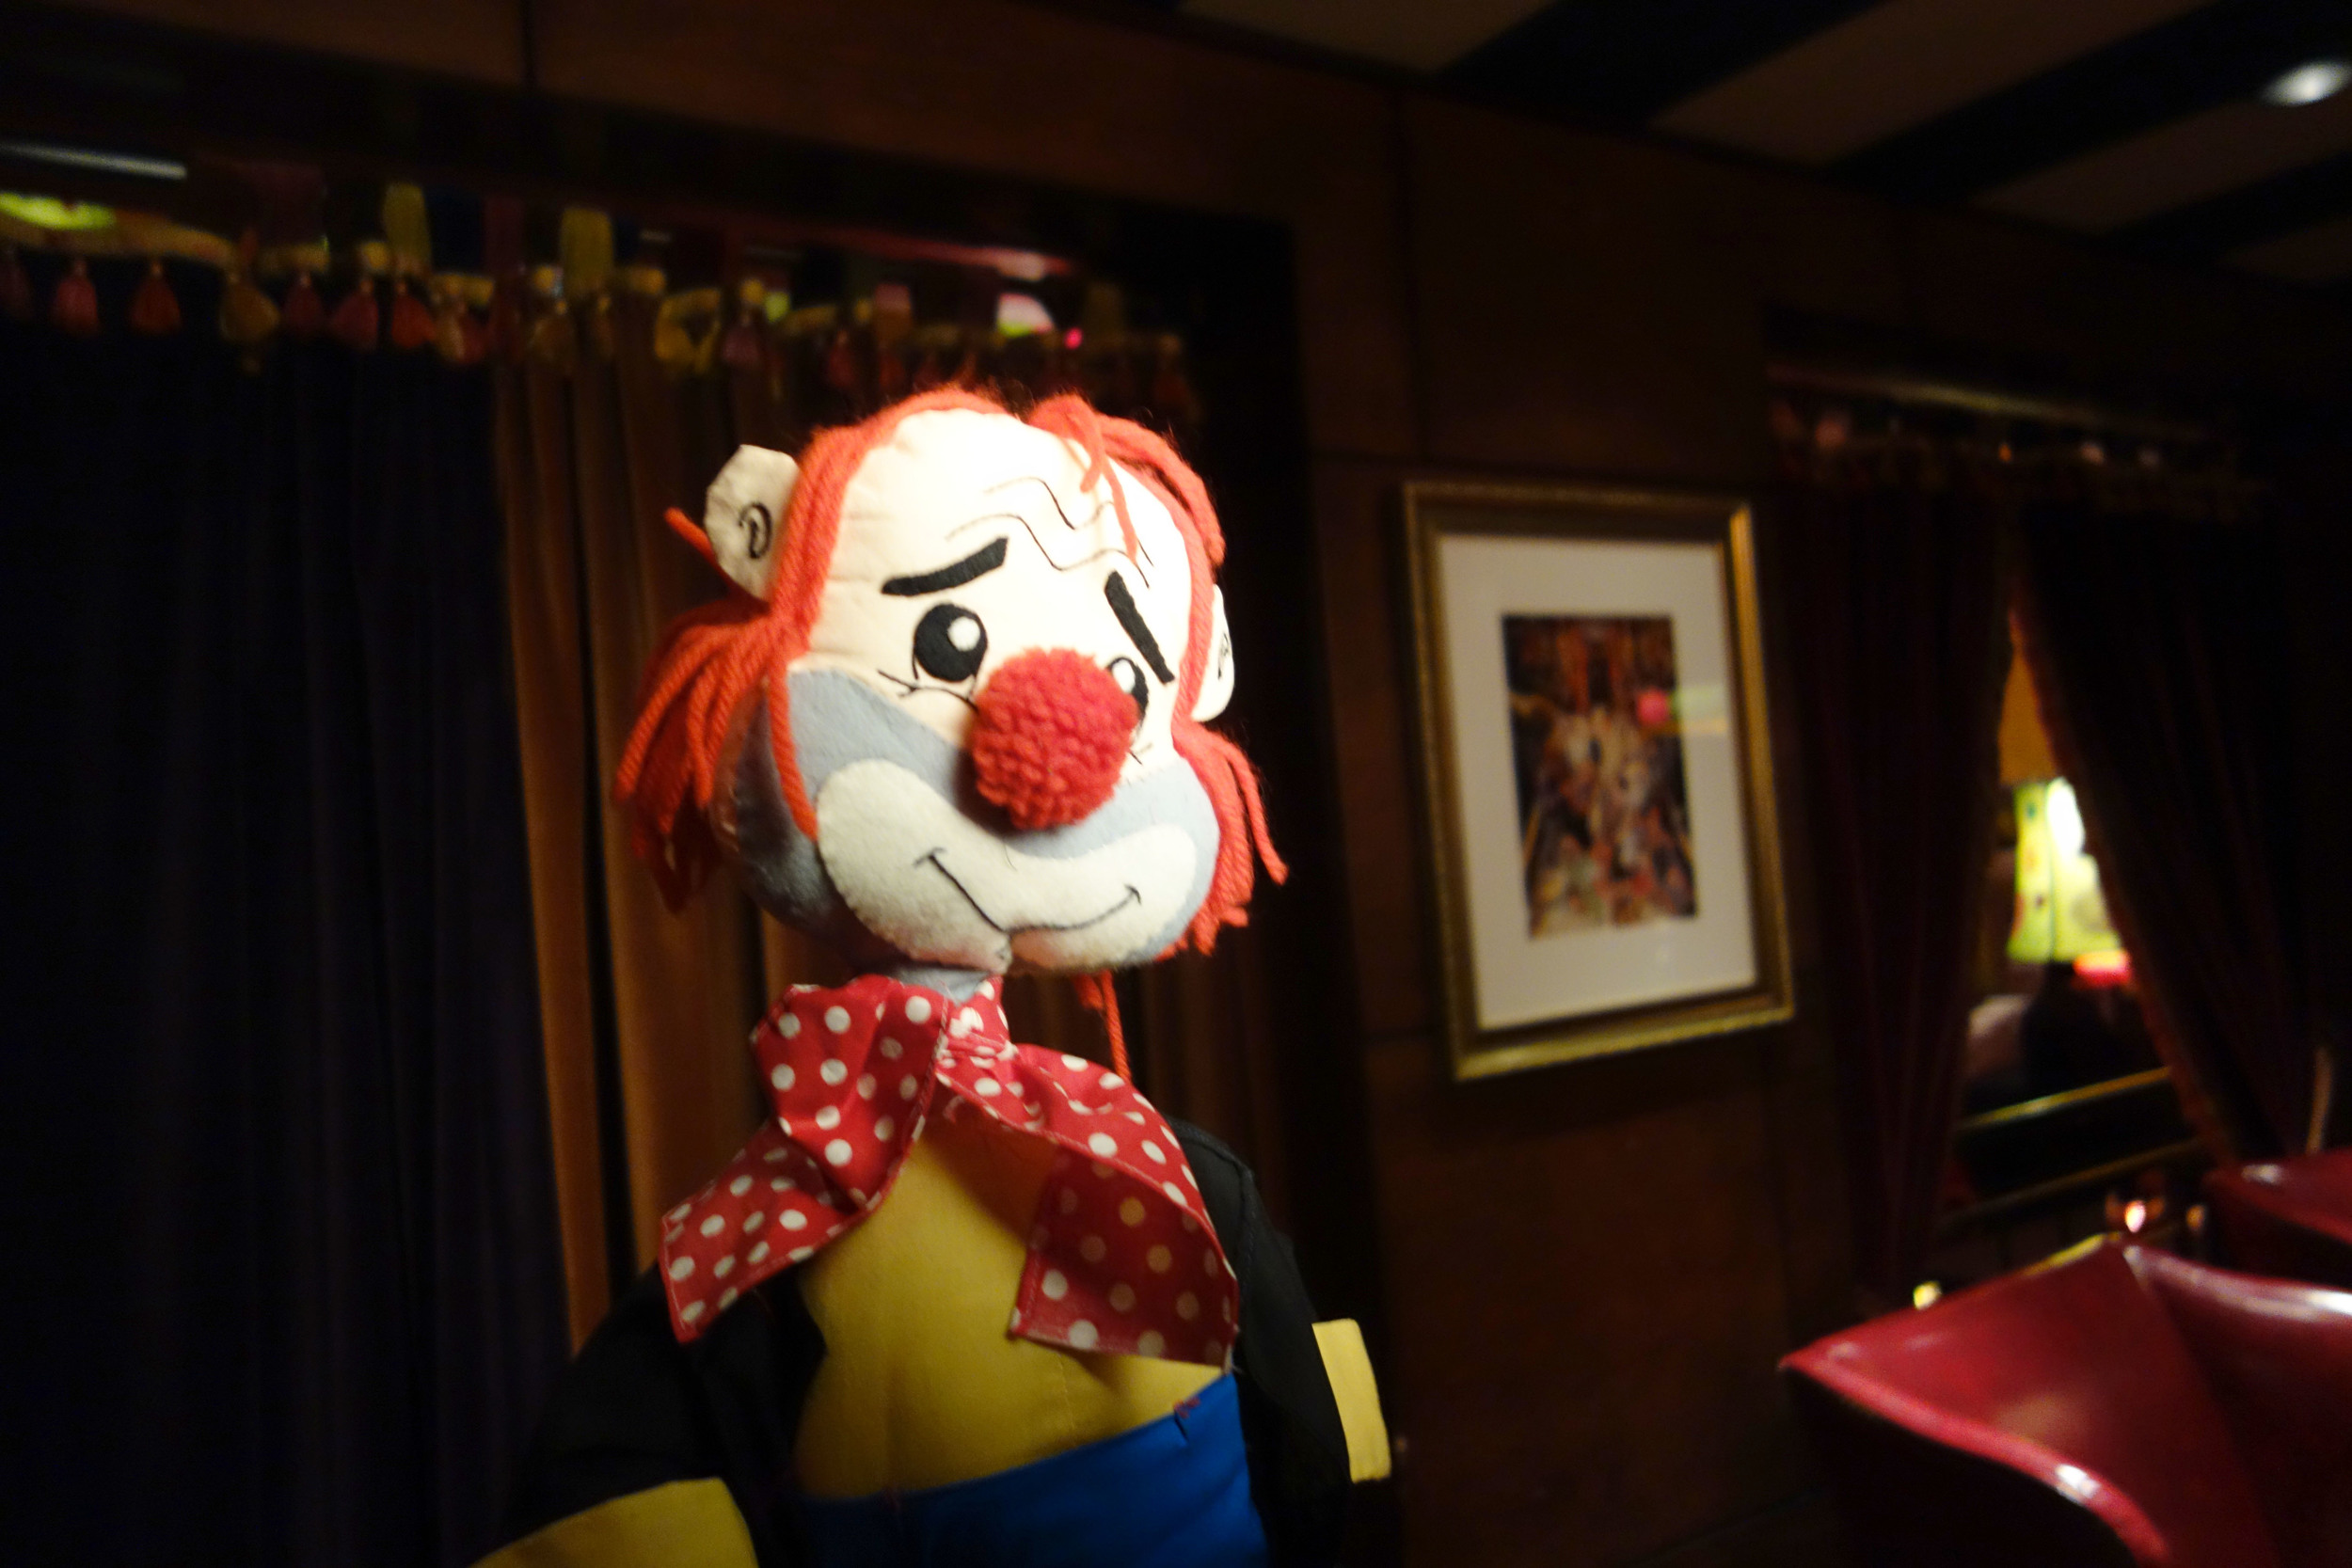 One of our circus themed photo booth props - the sad puppet clown!